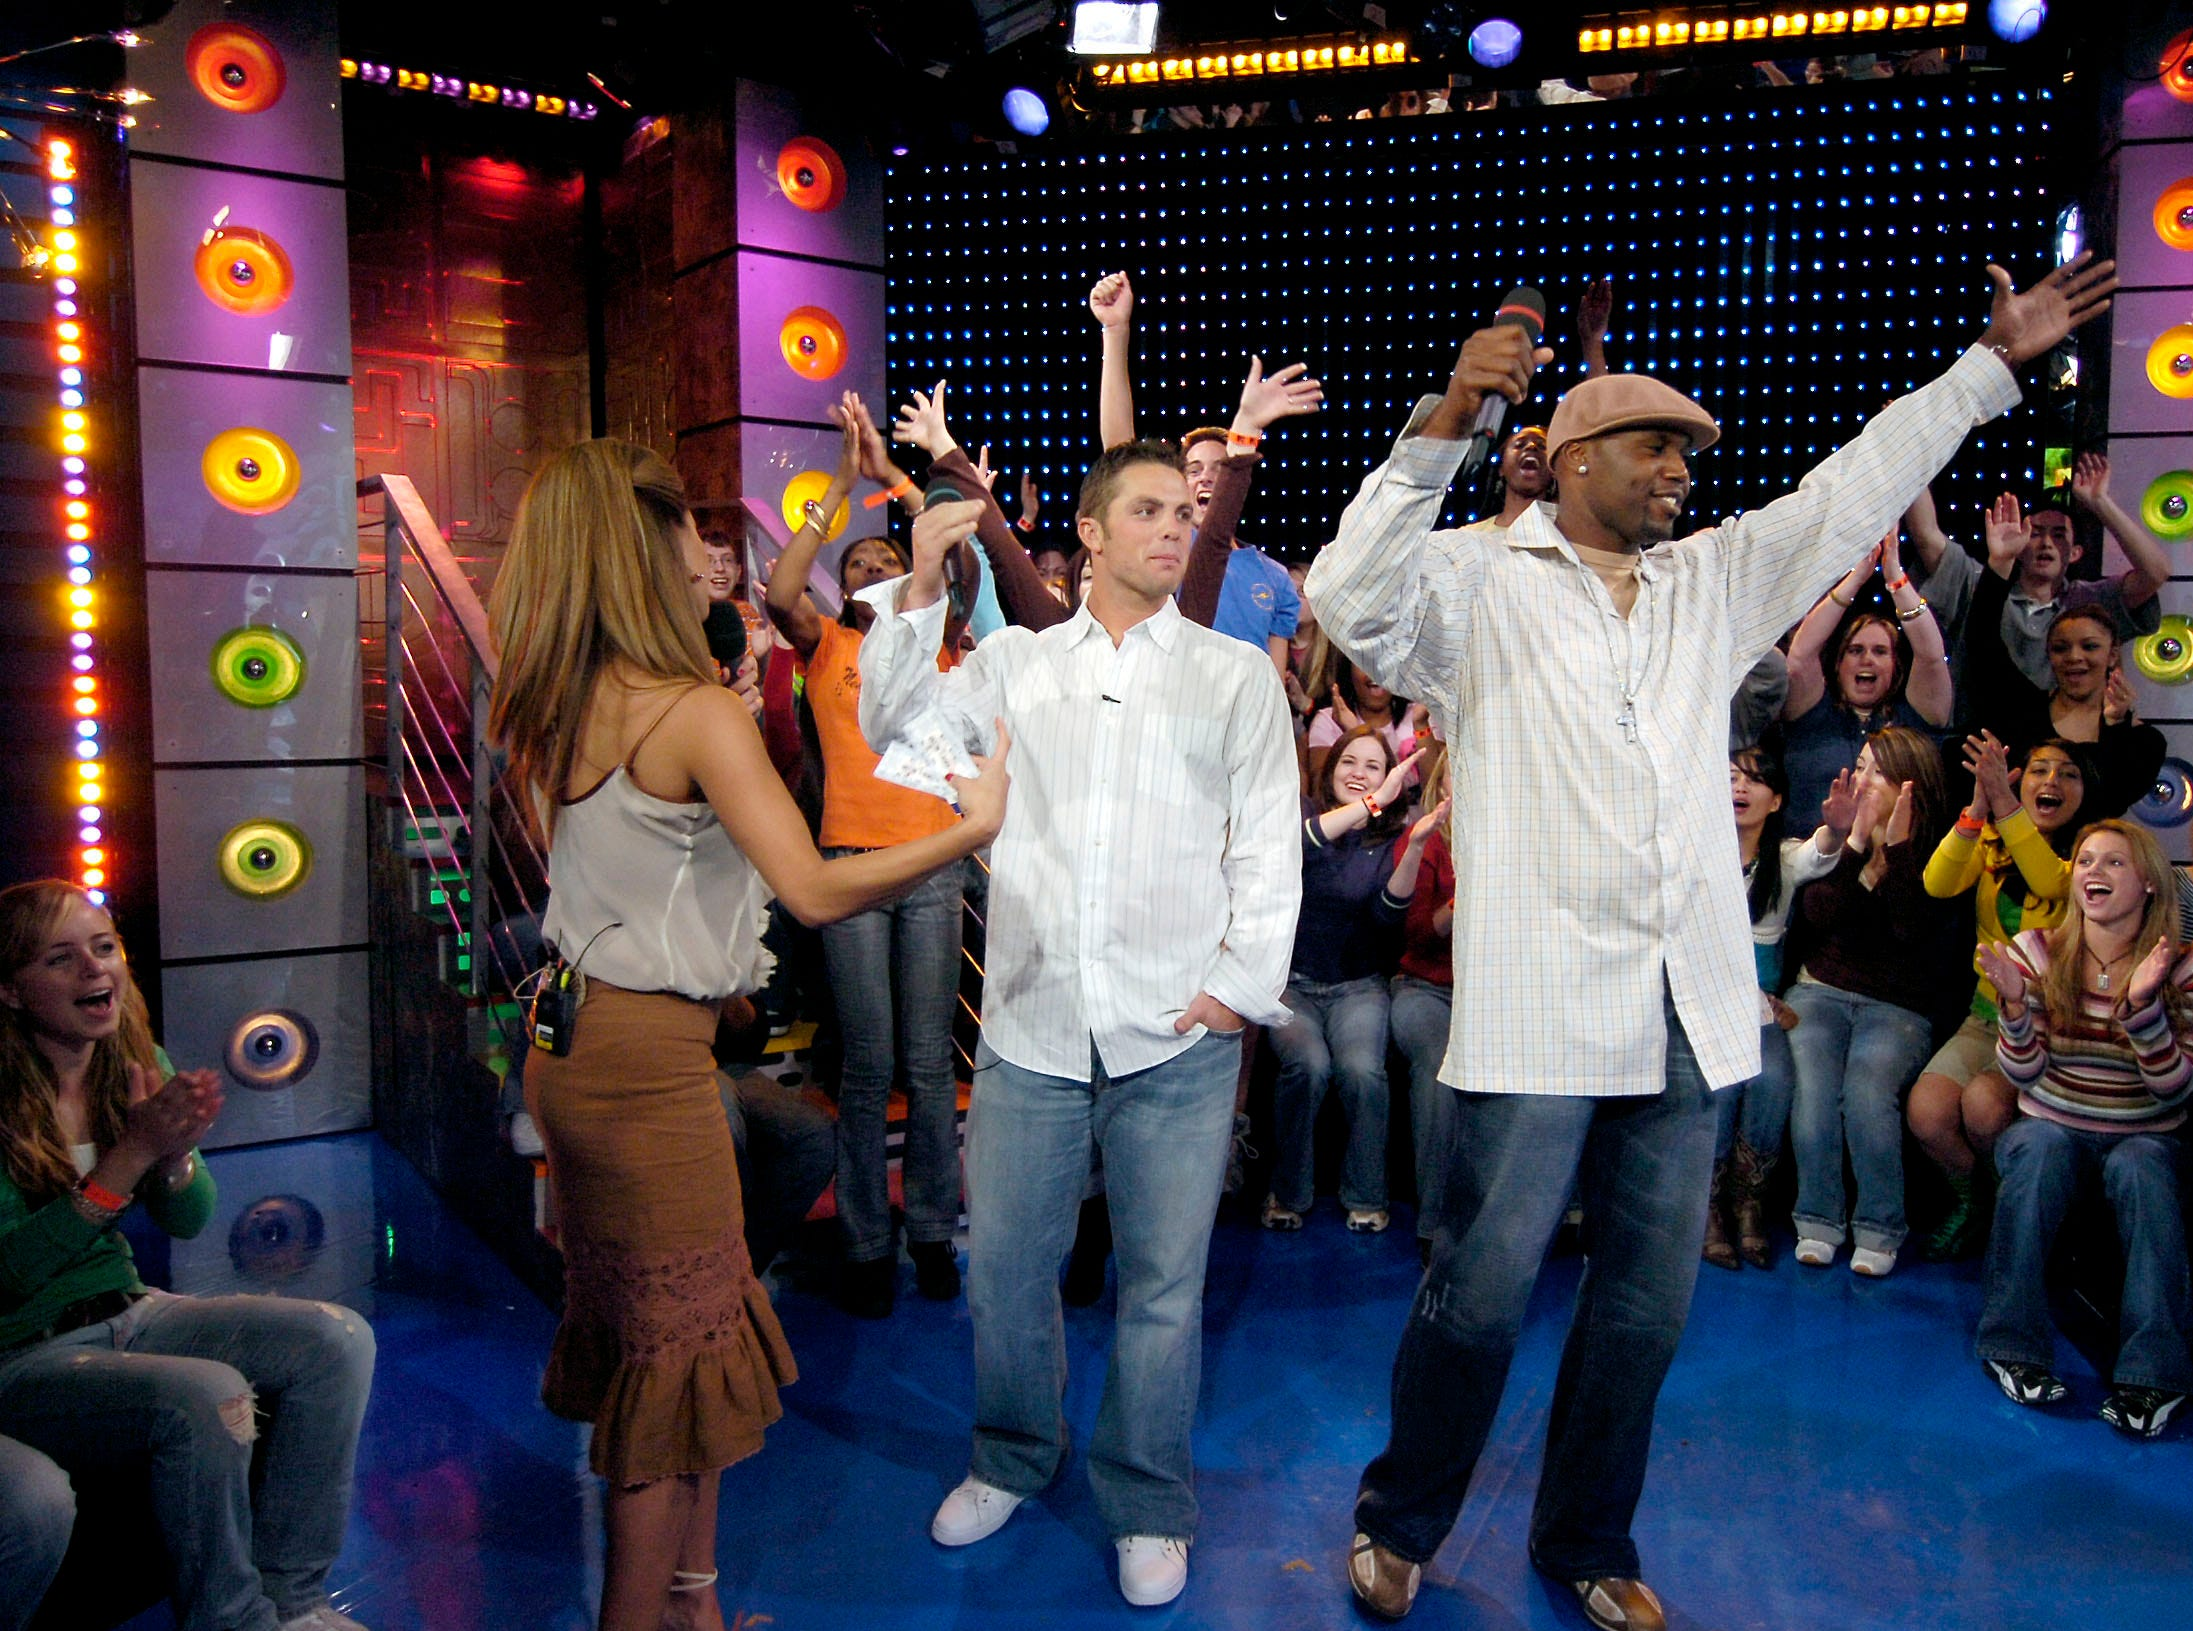 Mets players David Wright and Cliff Floyd visited the set of TRL on MTV yesterday. Here are the images from their appearance along with MTV host Vanessa Minillo.